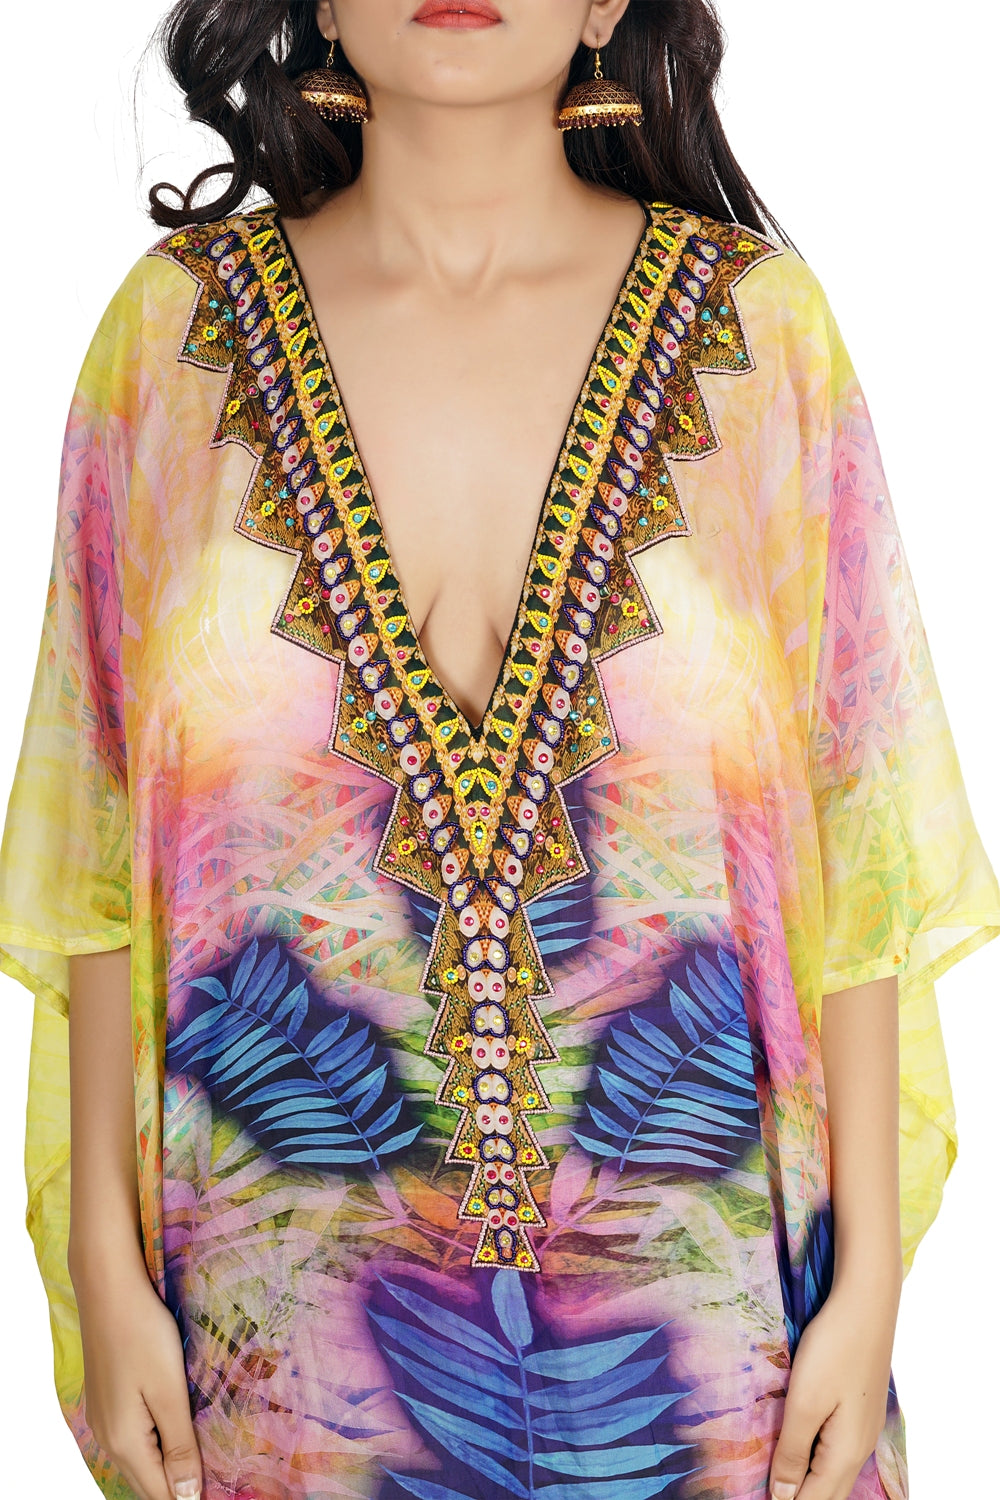 Silk Kaftan deep neck heavily Embellishment short unique kaftan dress Womens Kaftan Dress 376 - Silk kaftan